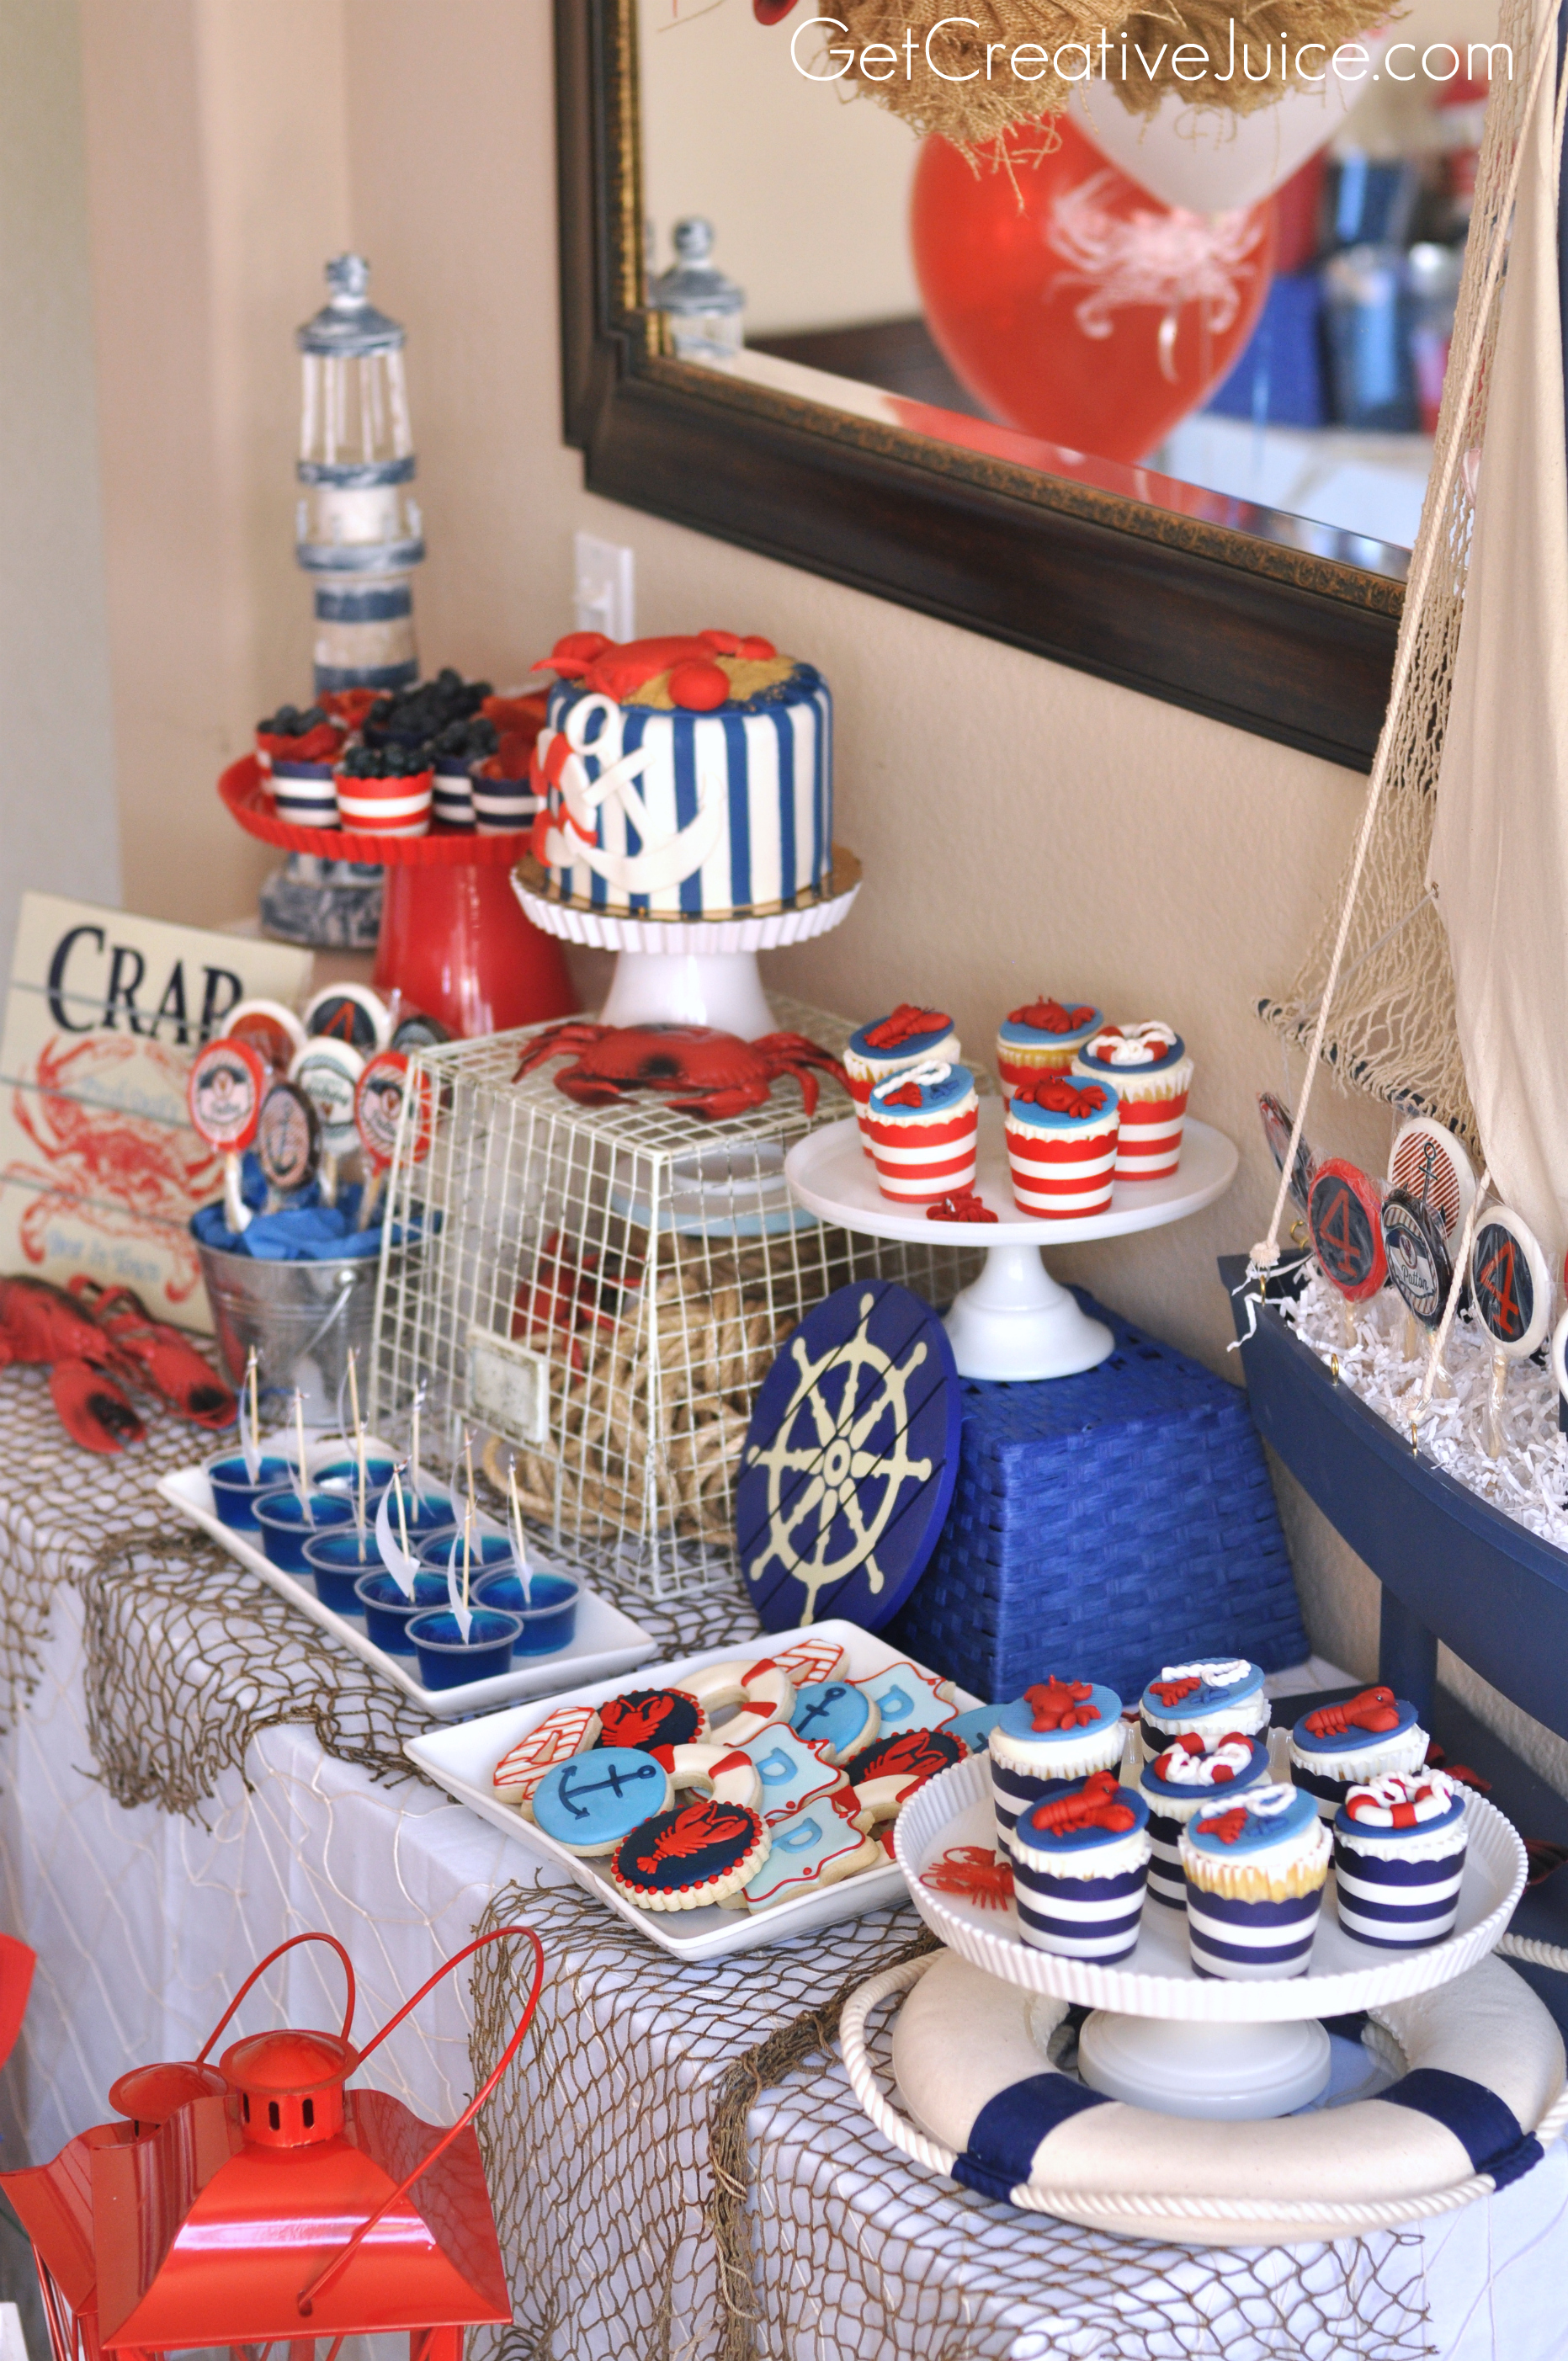 {party} Nautical Lobster Party  Creative Juice. Houzz Living Room Shutters. Living Room Chairs Ottawa. Dining Room Chairs In Living Room. Decorating Ideas Living Room Small. Living Room Paint Ideas With Fireplace. Living Room Home Decorating. Living Room Furniture Wayfair. Fixer Upper Living Room Ideas